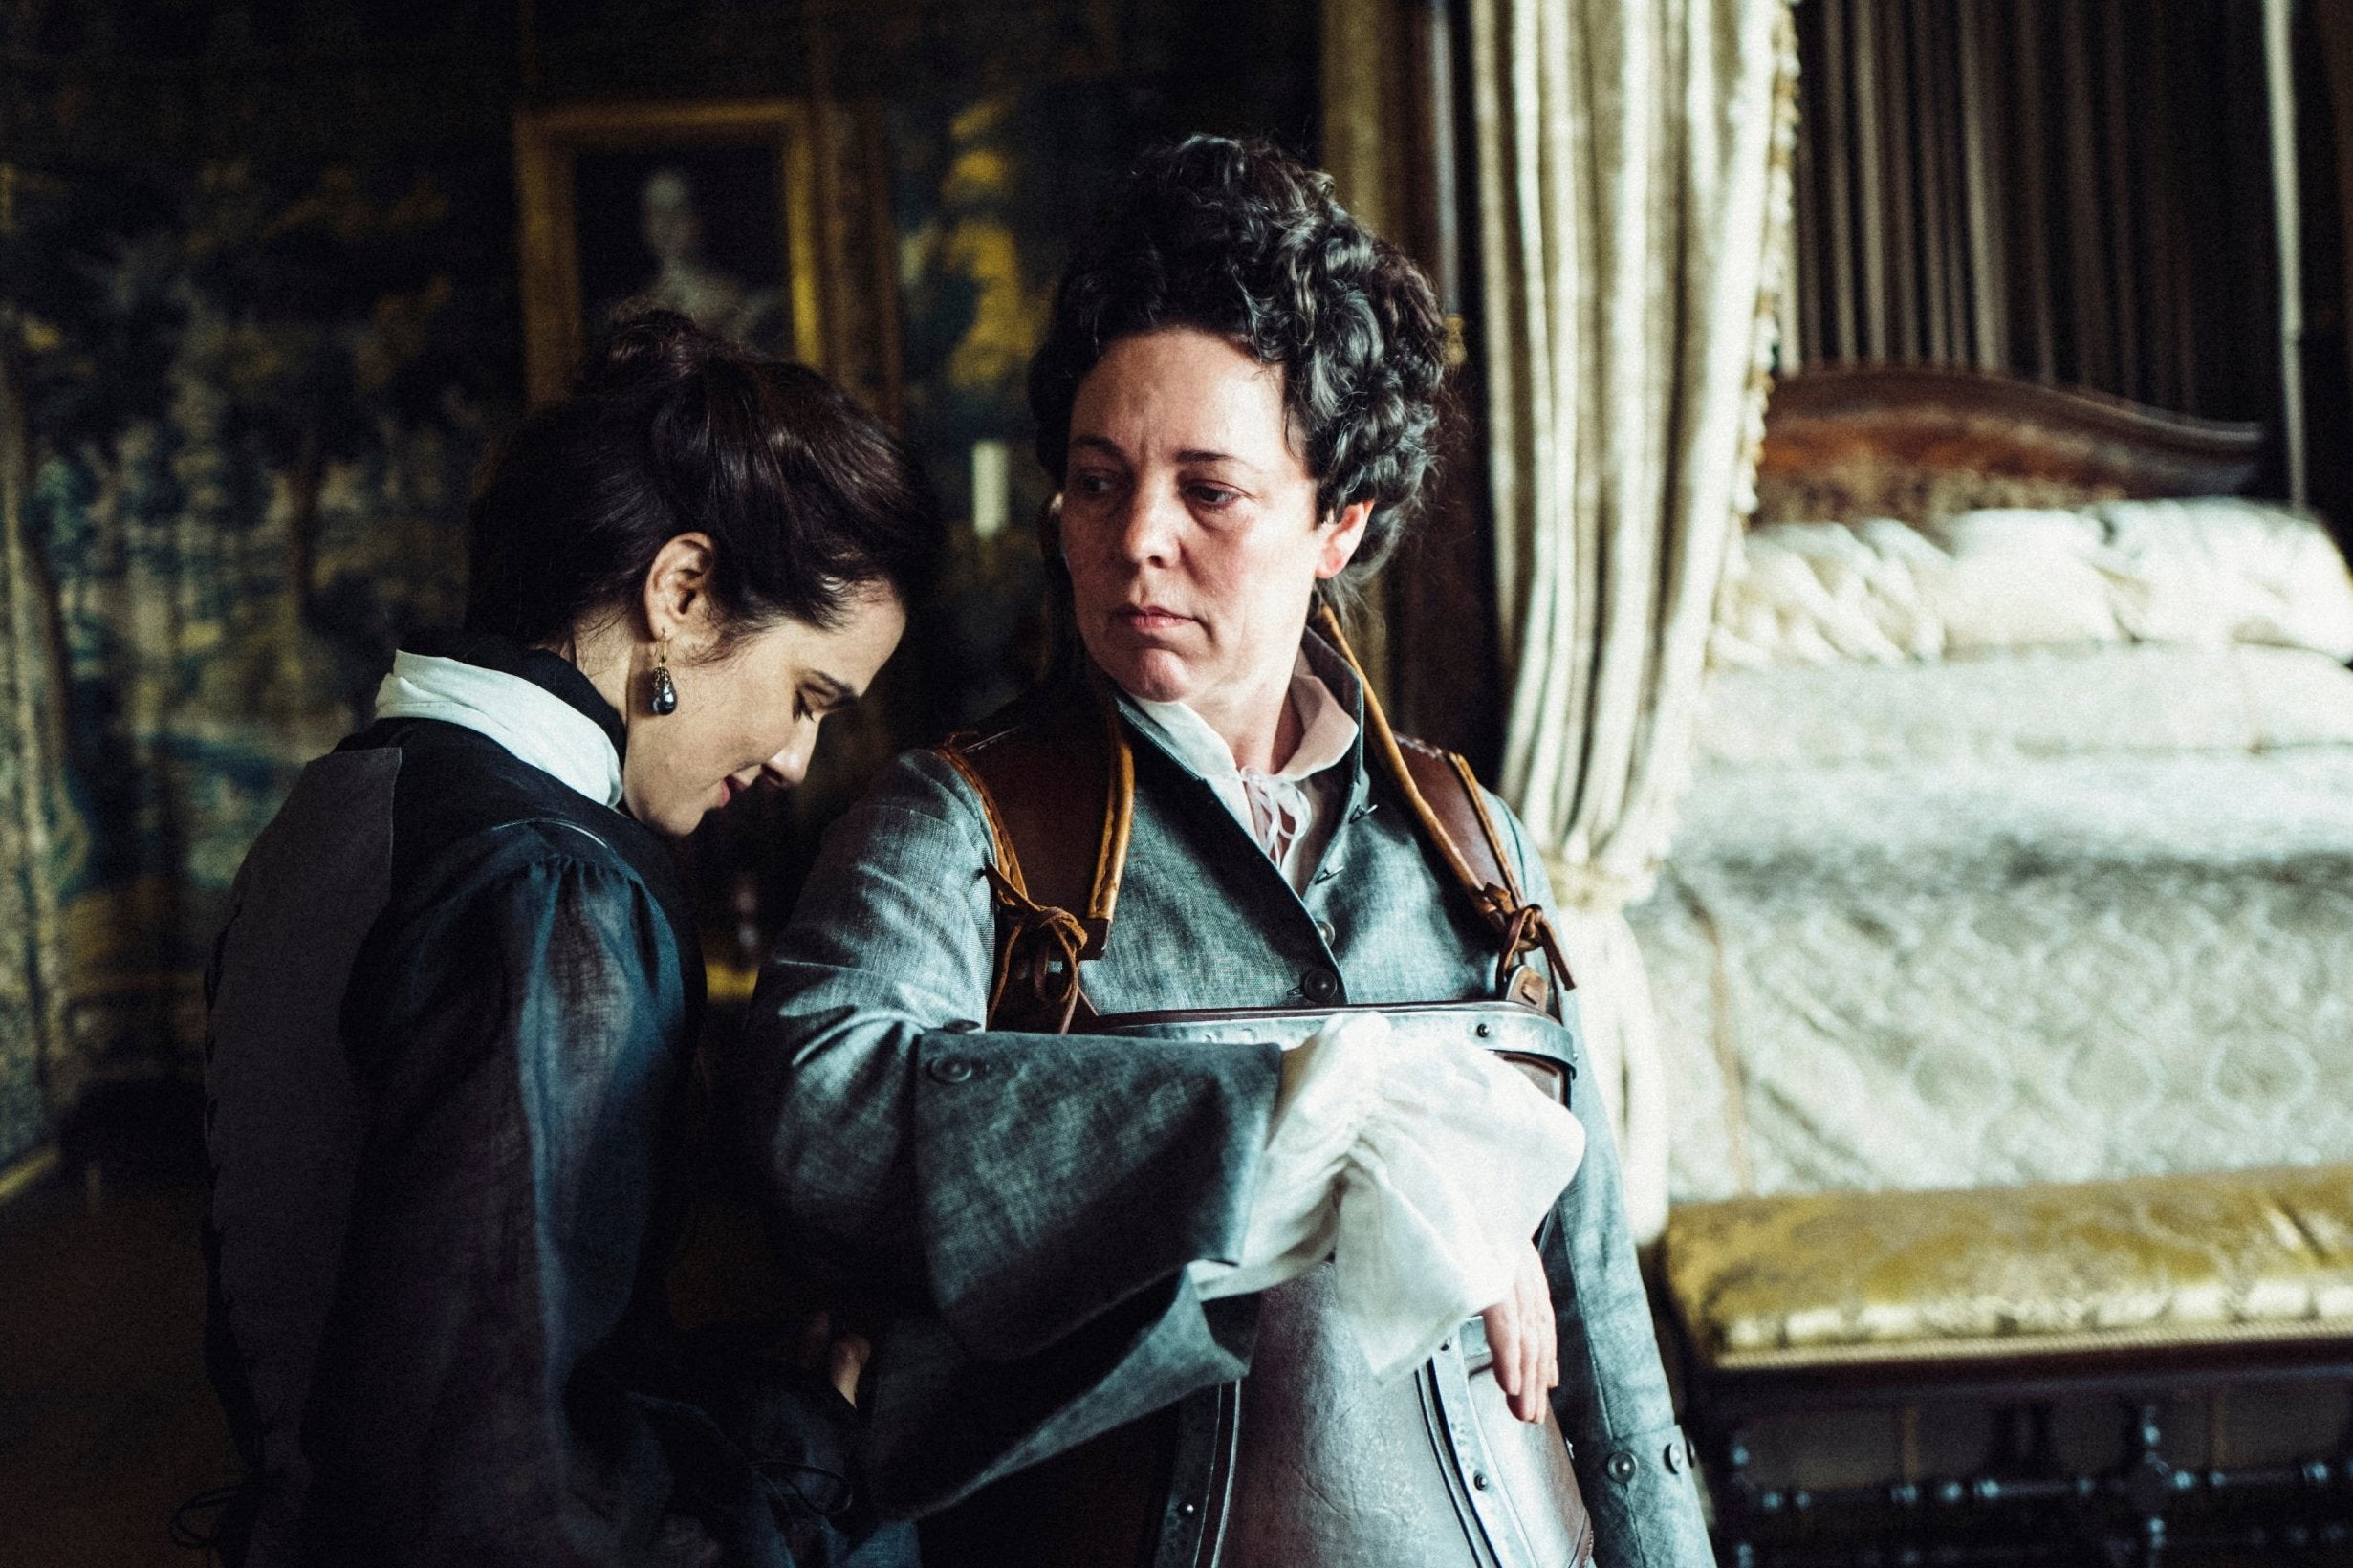 The Favourite The True Story Behind The Oscar Nominated Film